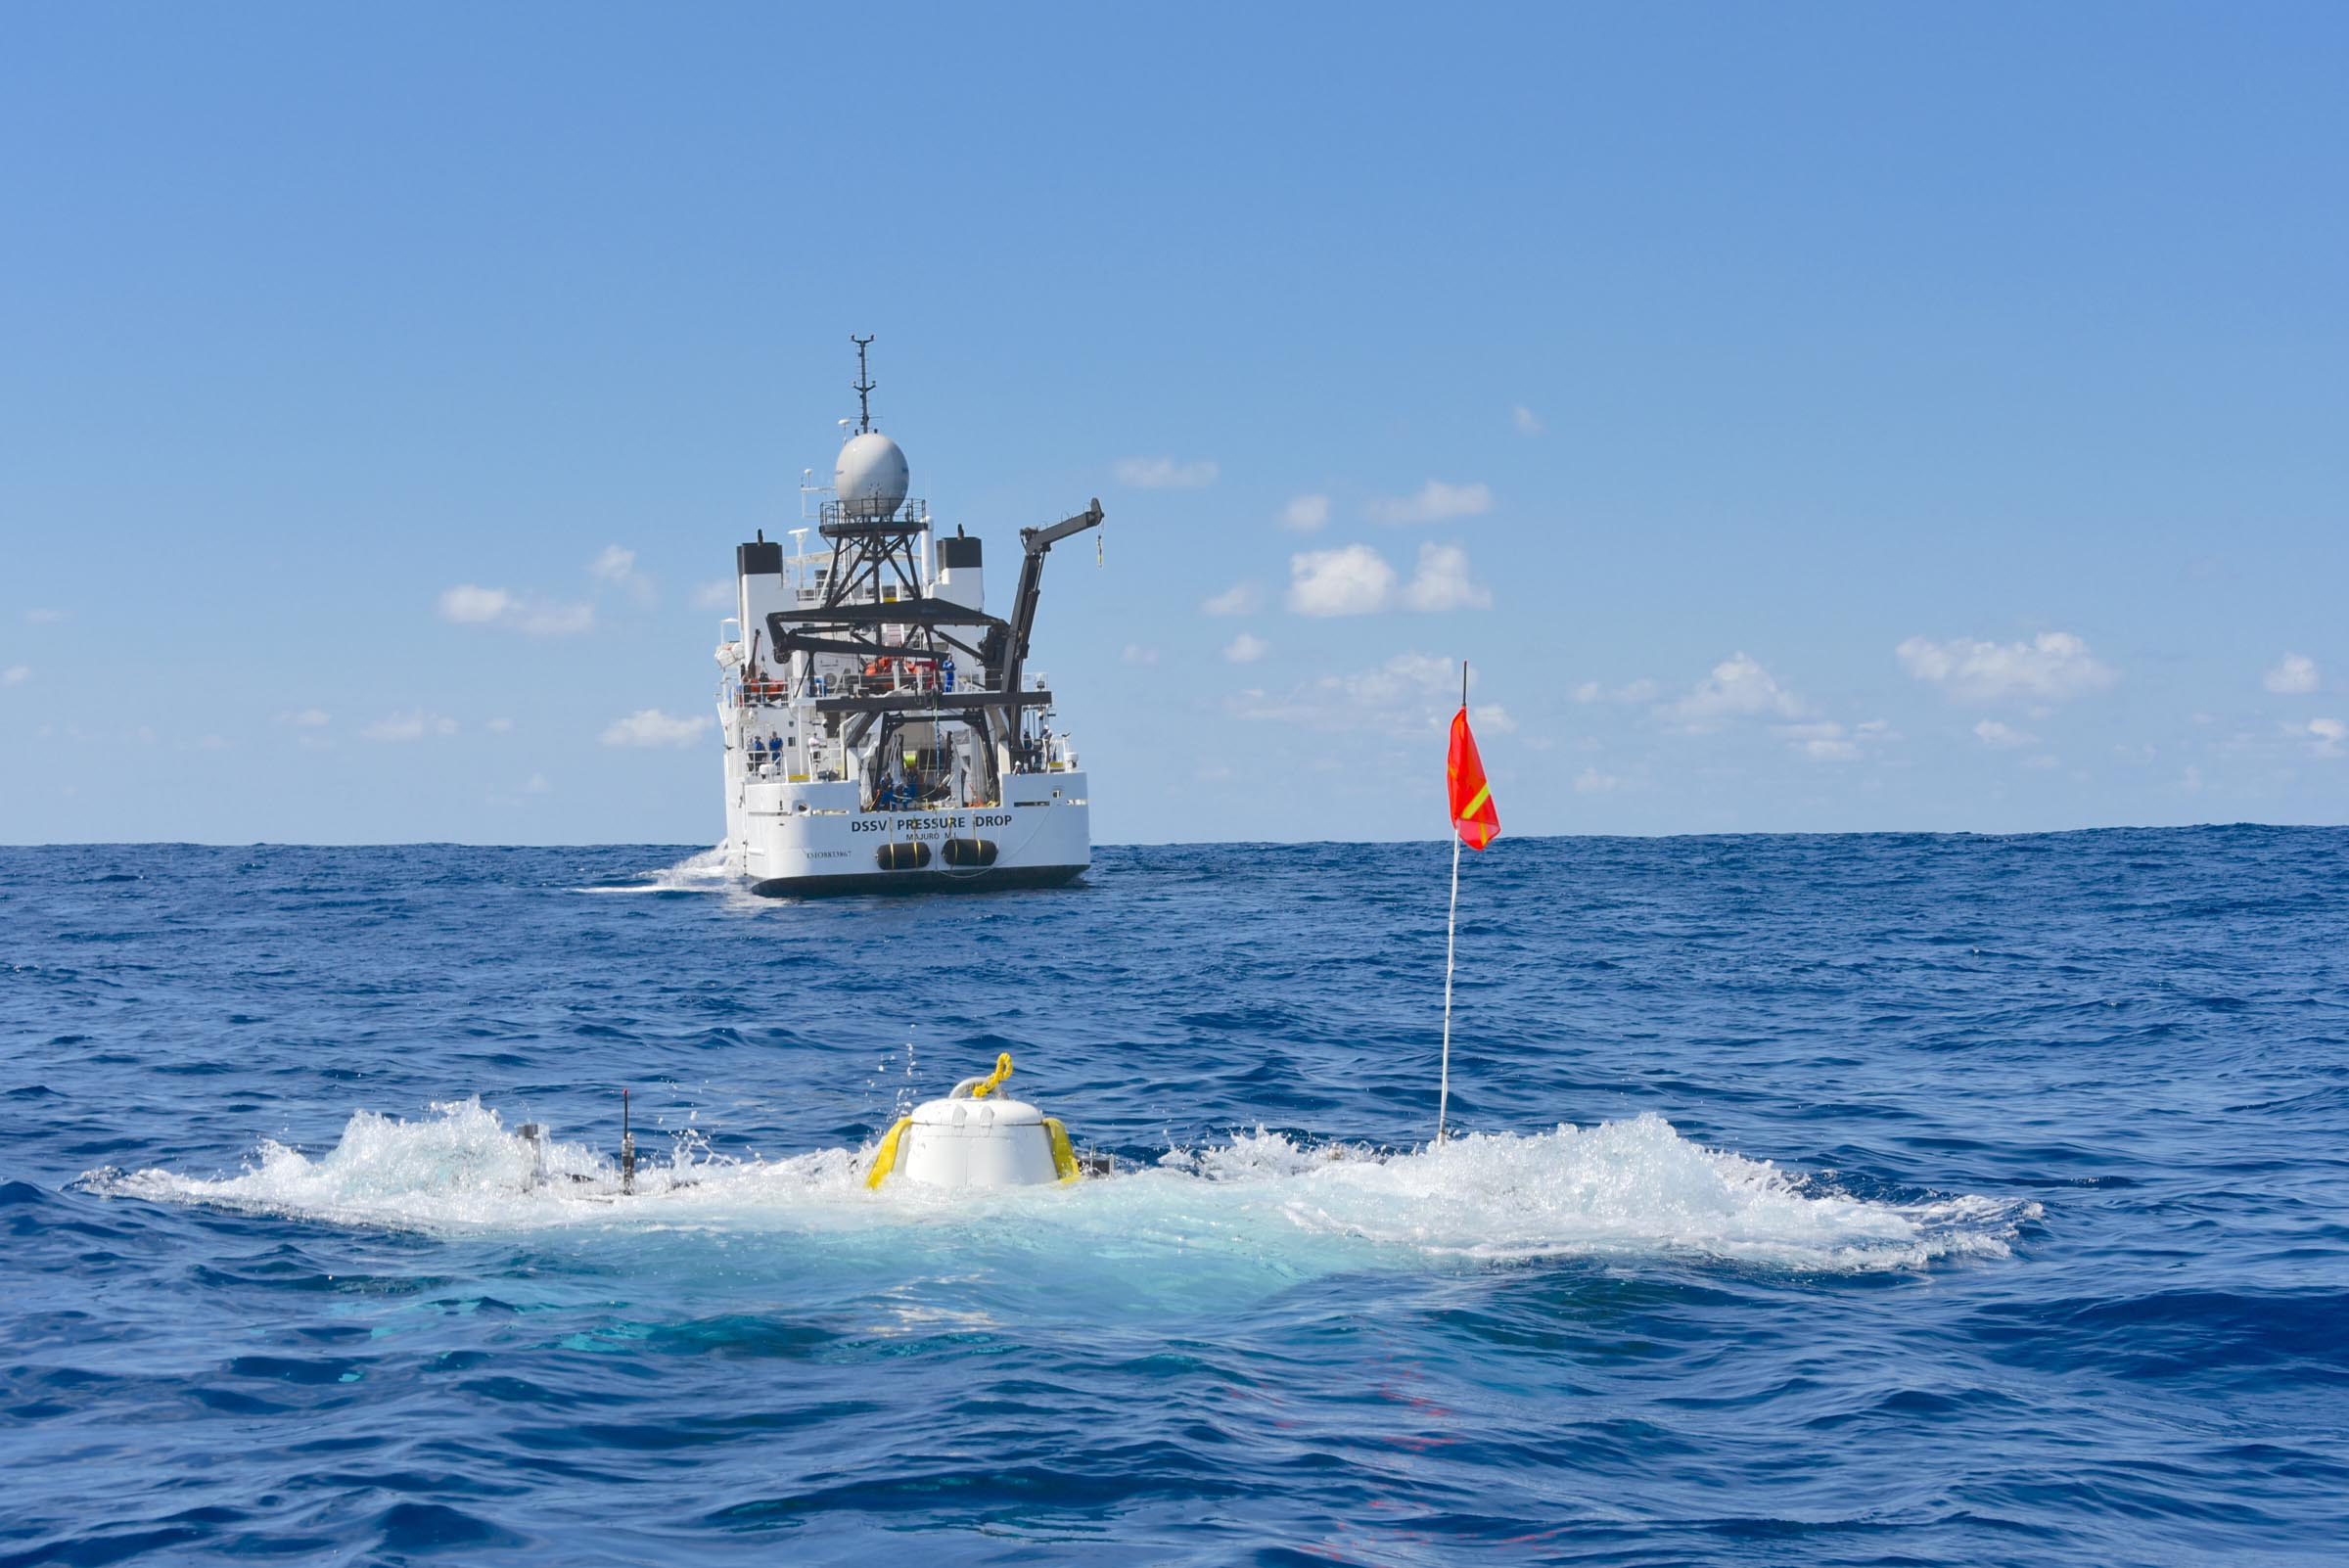 The DSV Limiting Factor descending to the deepest point of the Indian Ocean